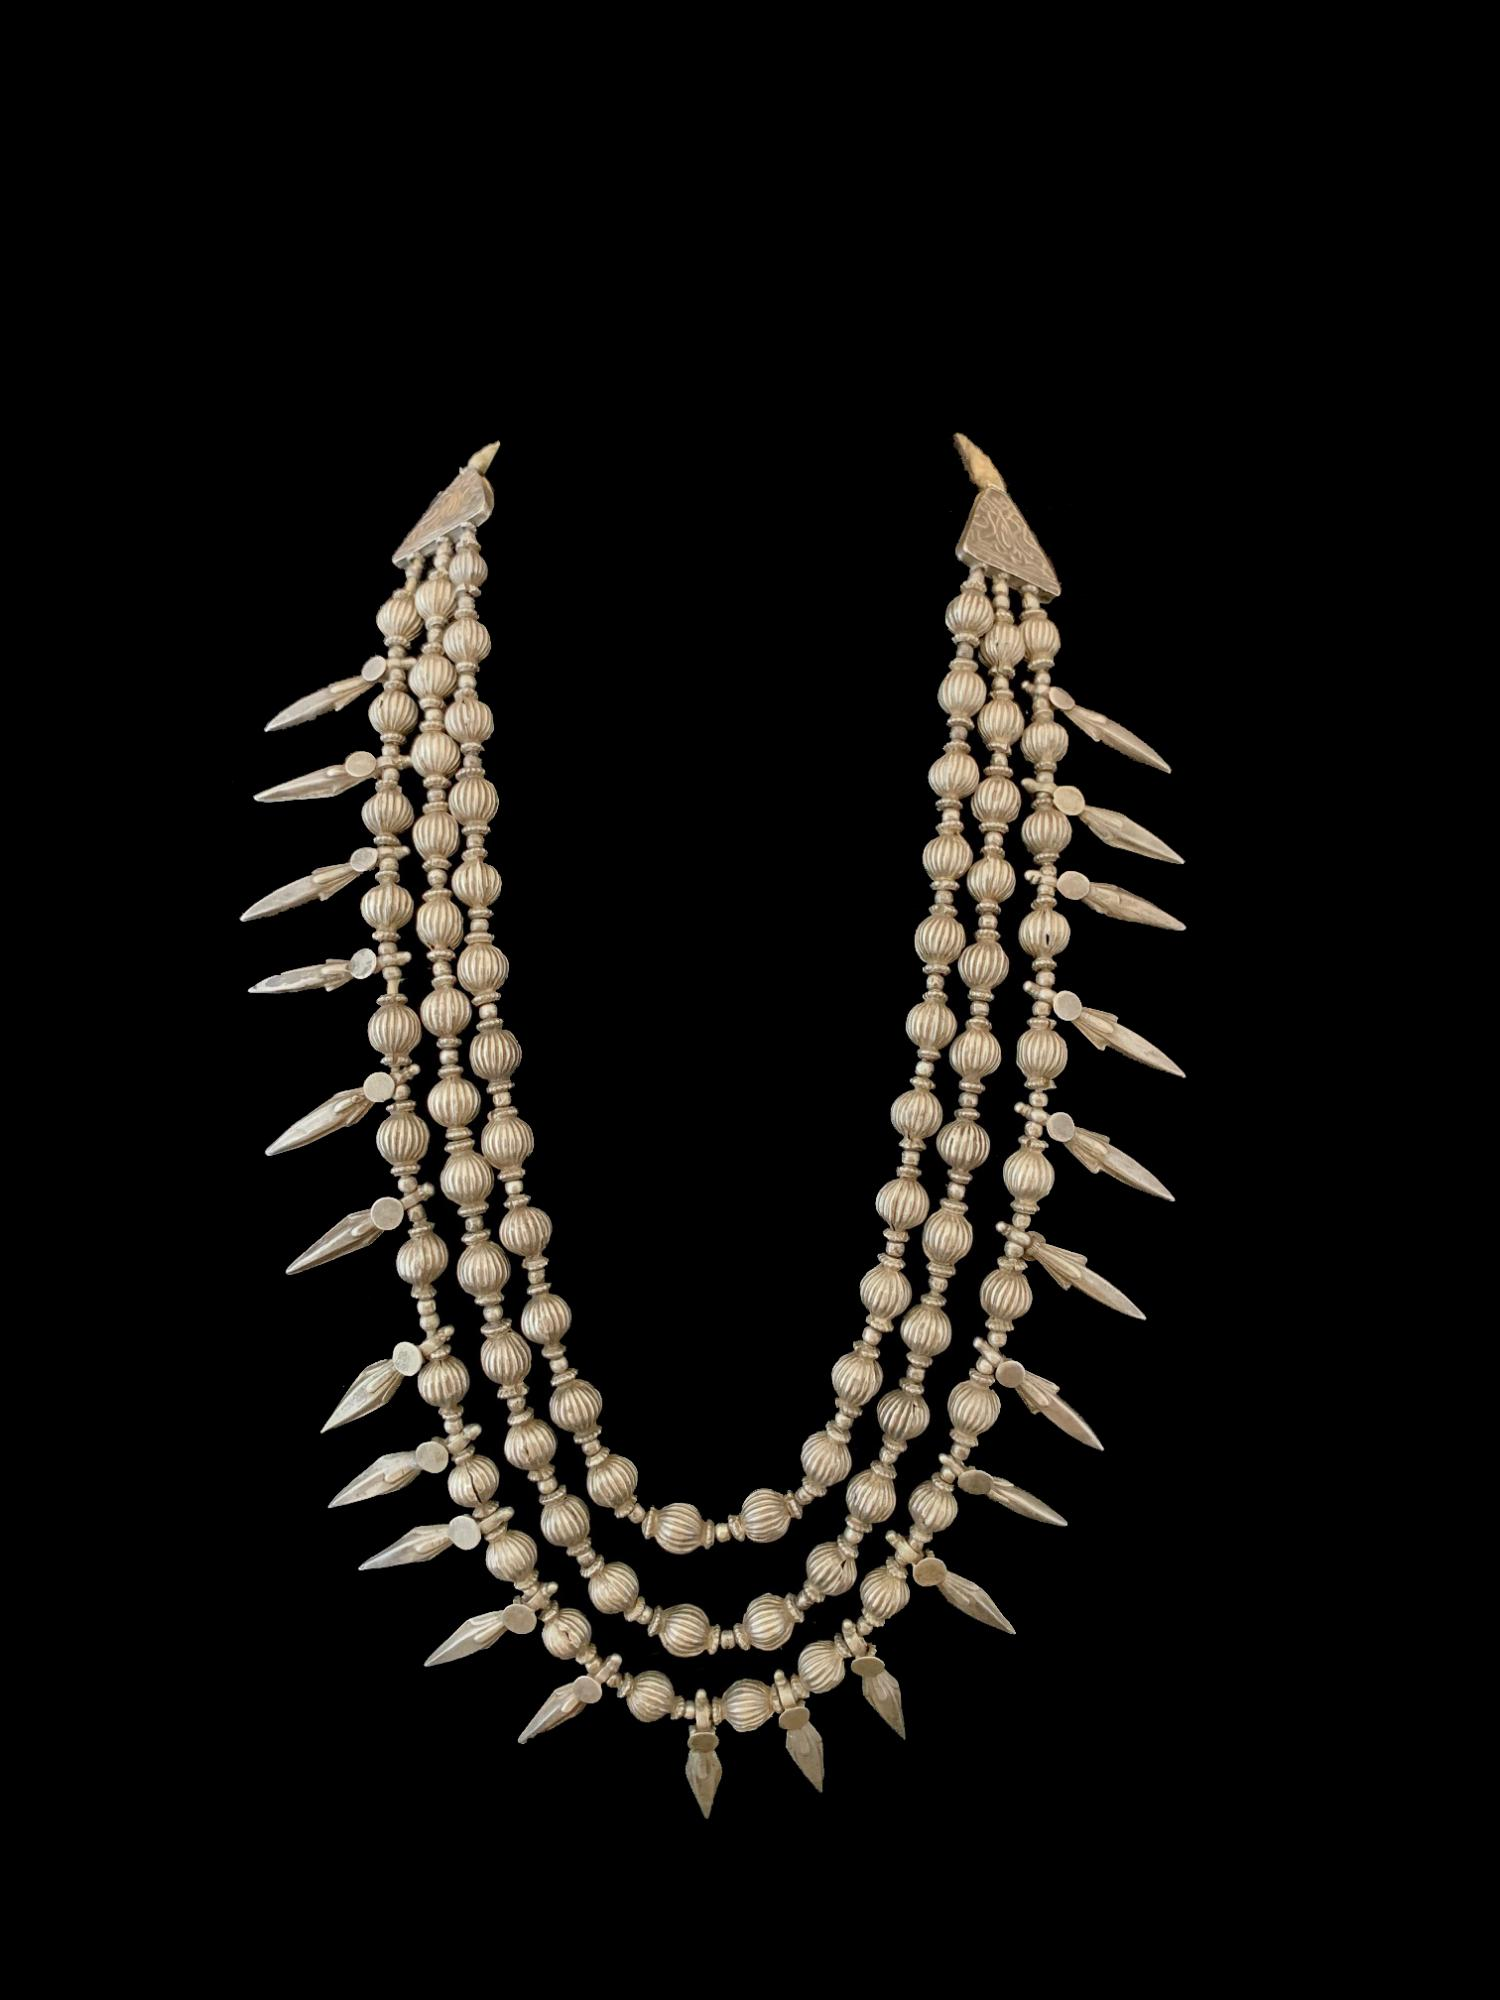 Tribal Silver Necklace from northern India